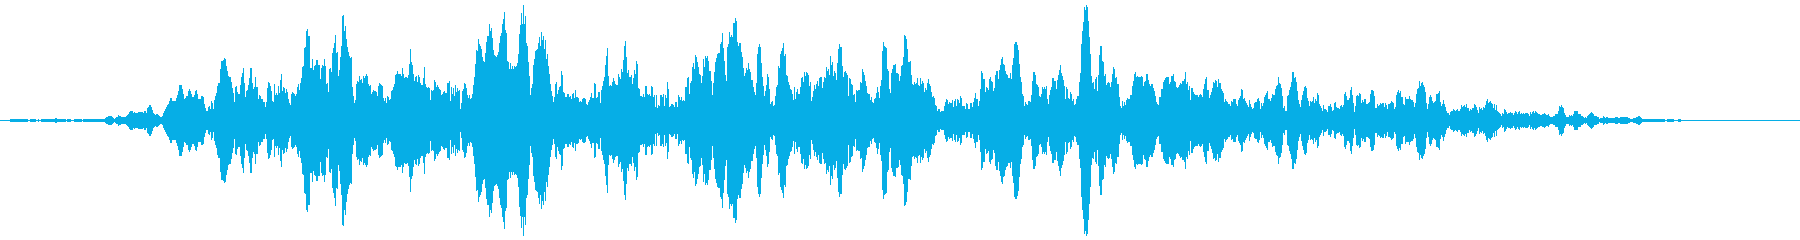 Cuu waler (universe is a mystery 2)'s reproduced waveform